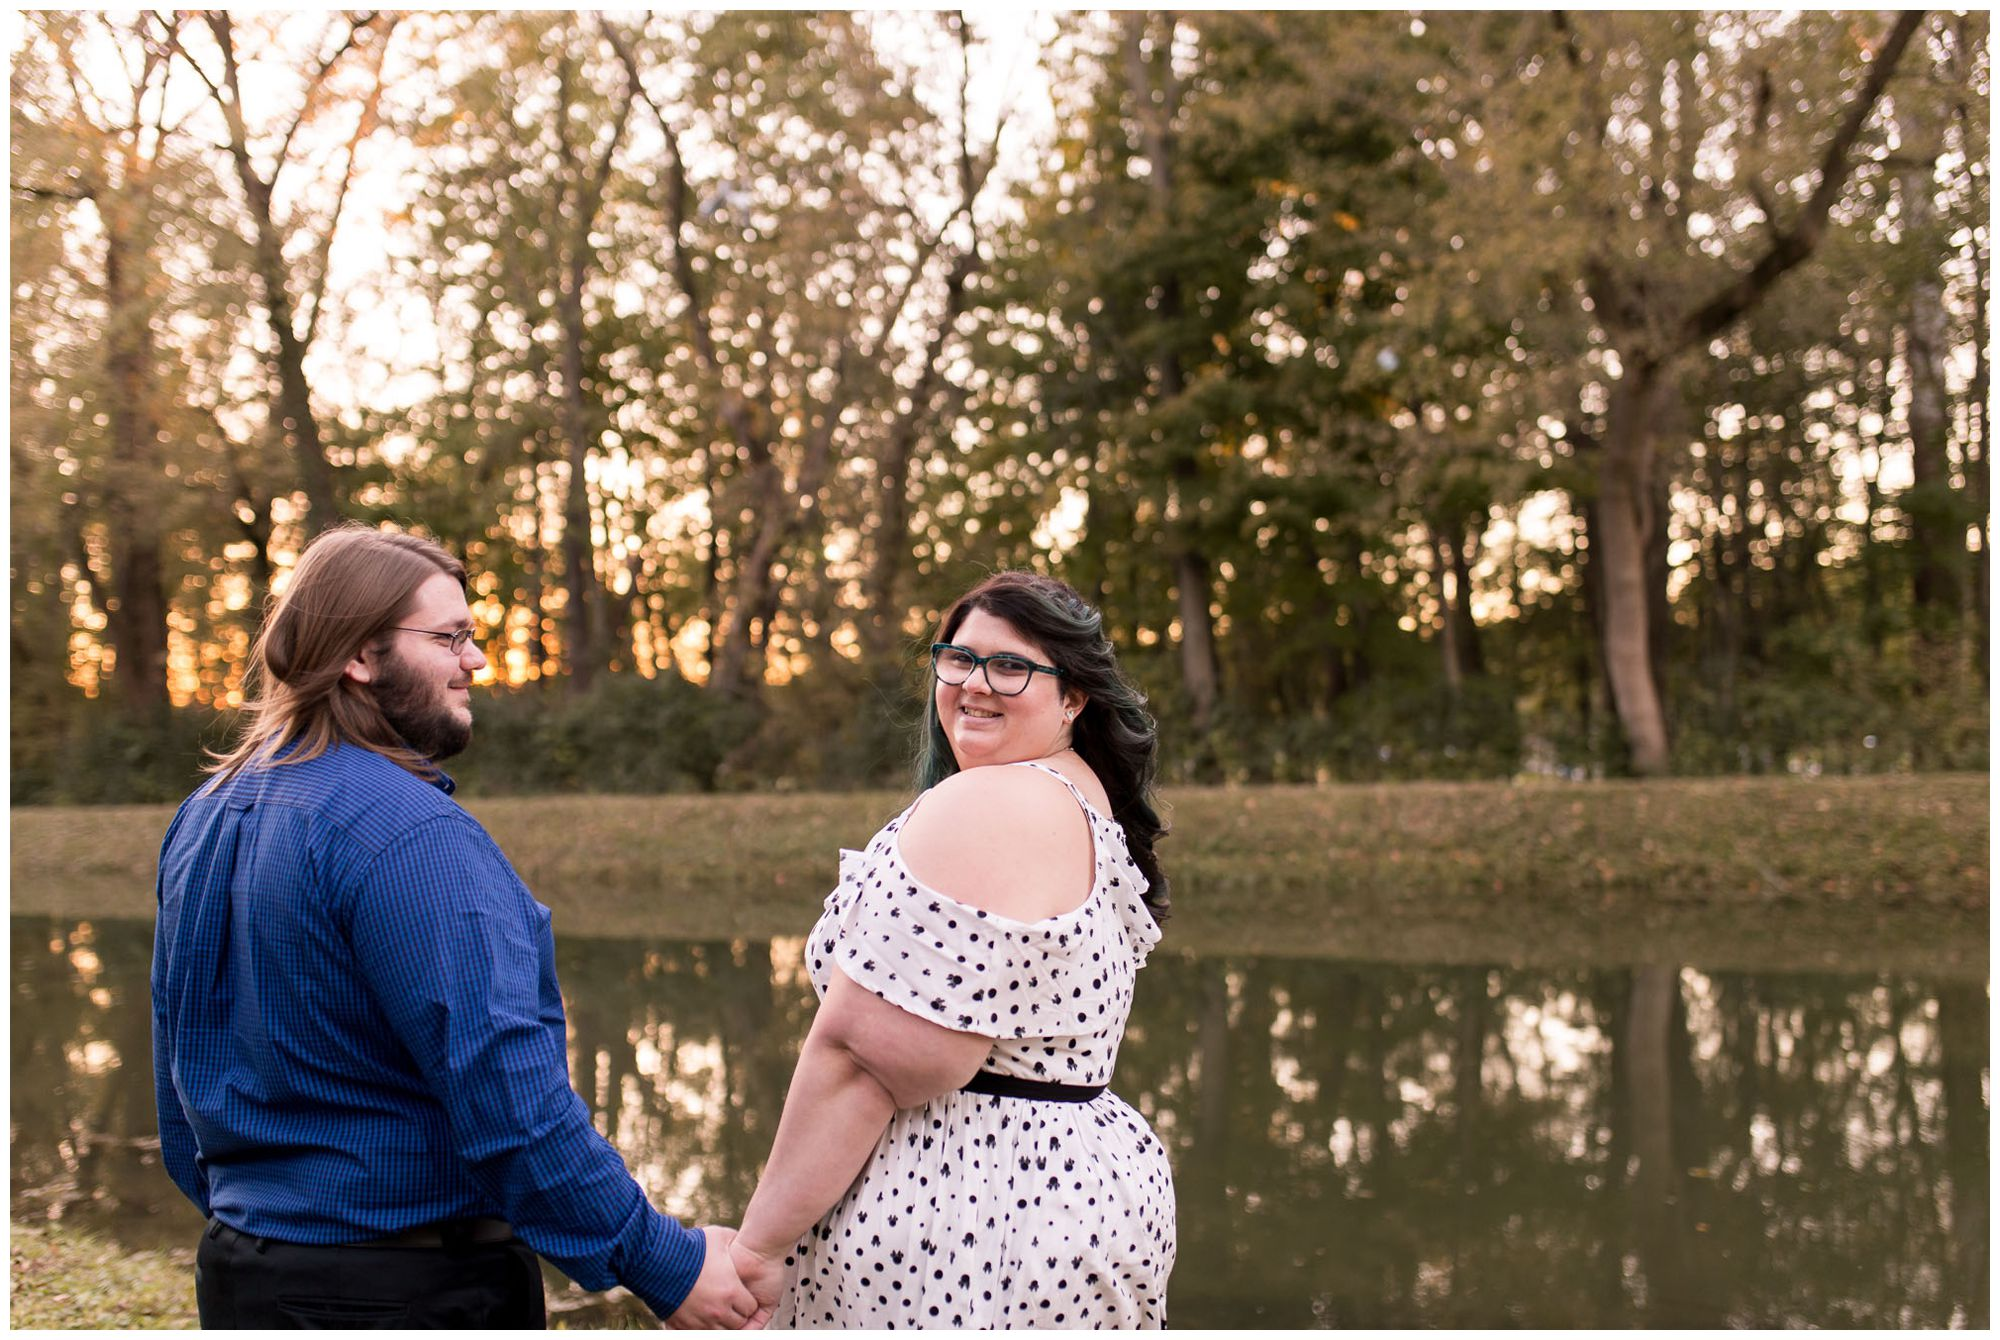 wife looks back at camera during anniversary session at Holcomb Gardens in Indianapolis